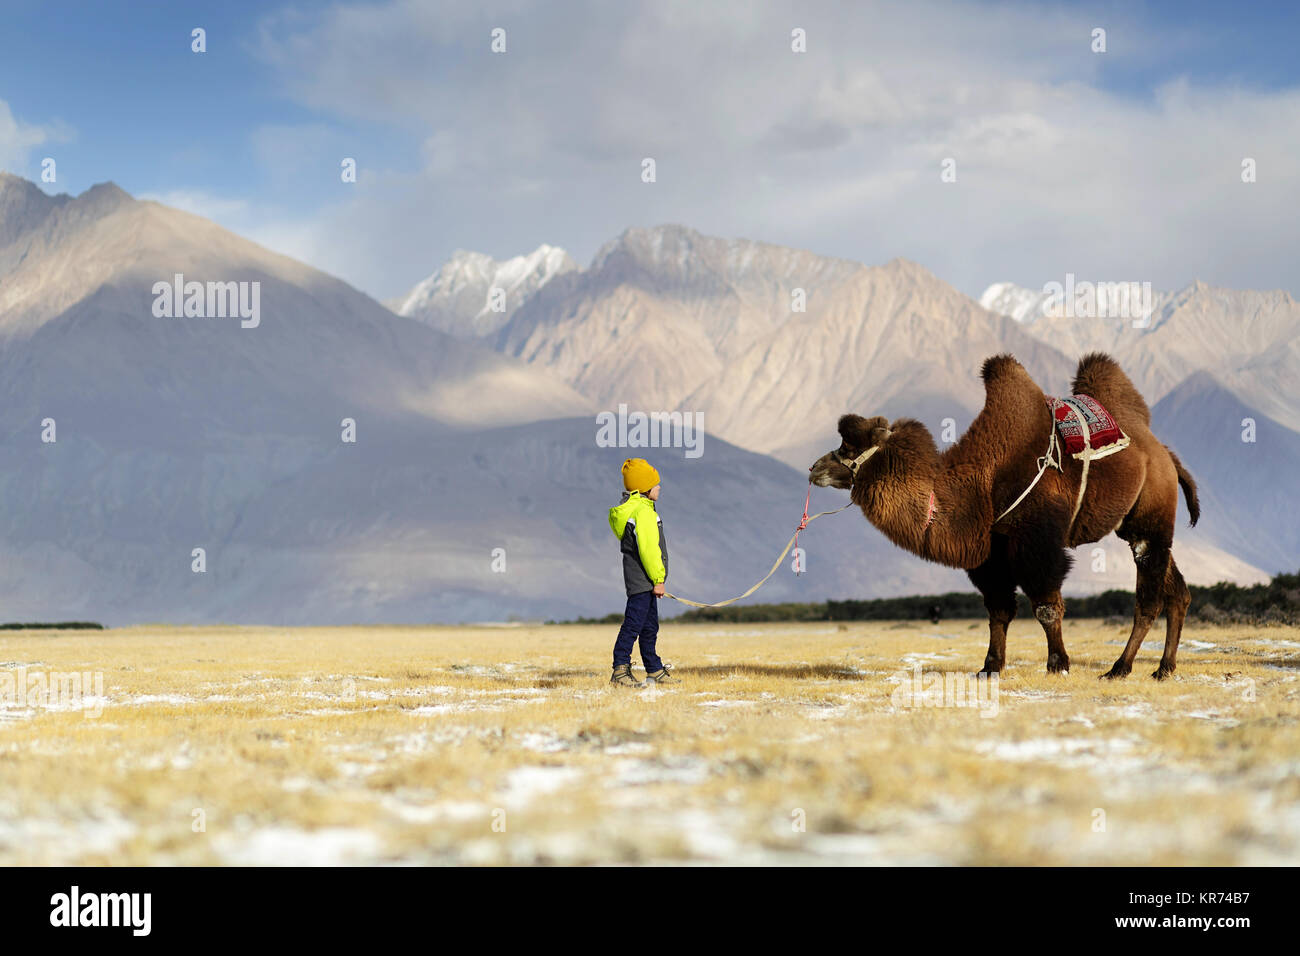 Young western boy riding double hump camel and crossing the desert in the Nubra valley, Ladakh, Jammu and Kashmir, - Stock Image